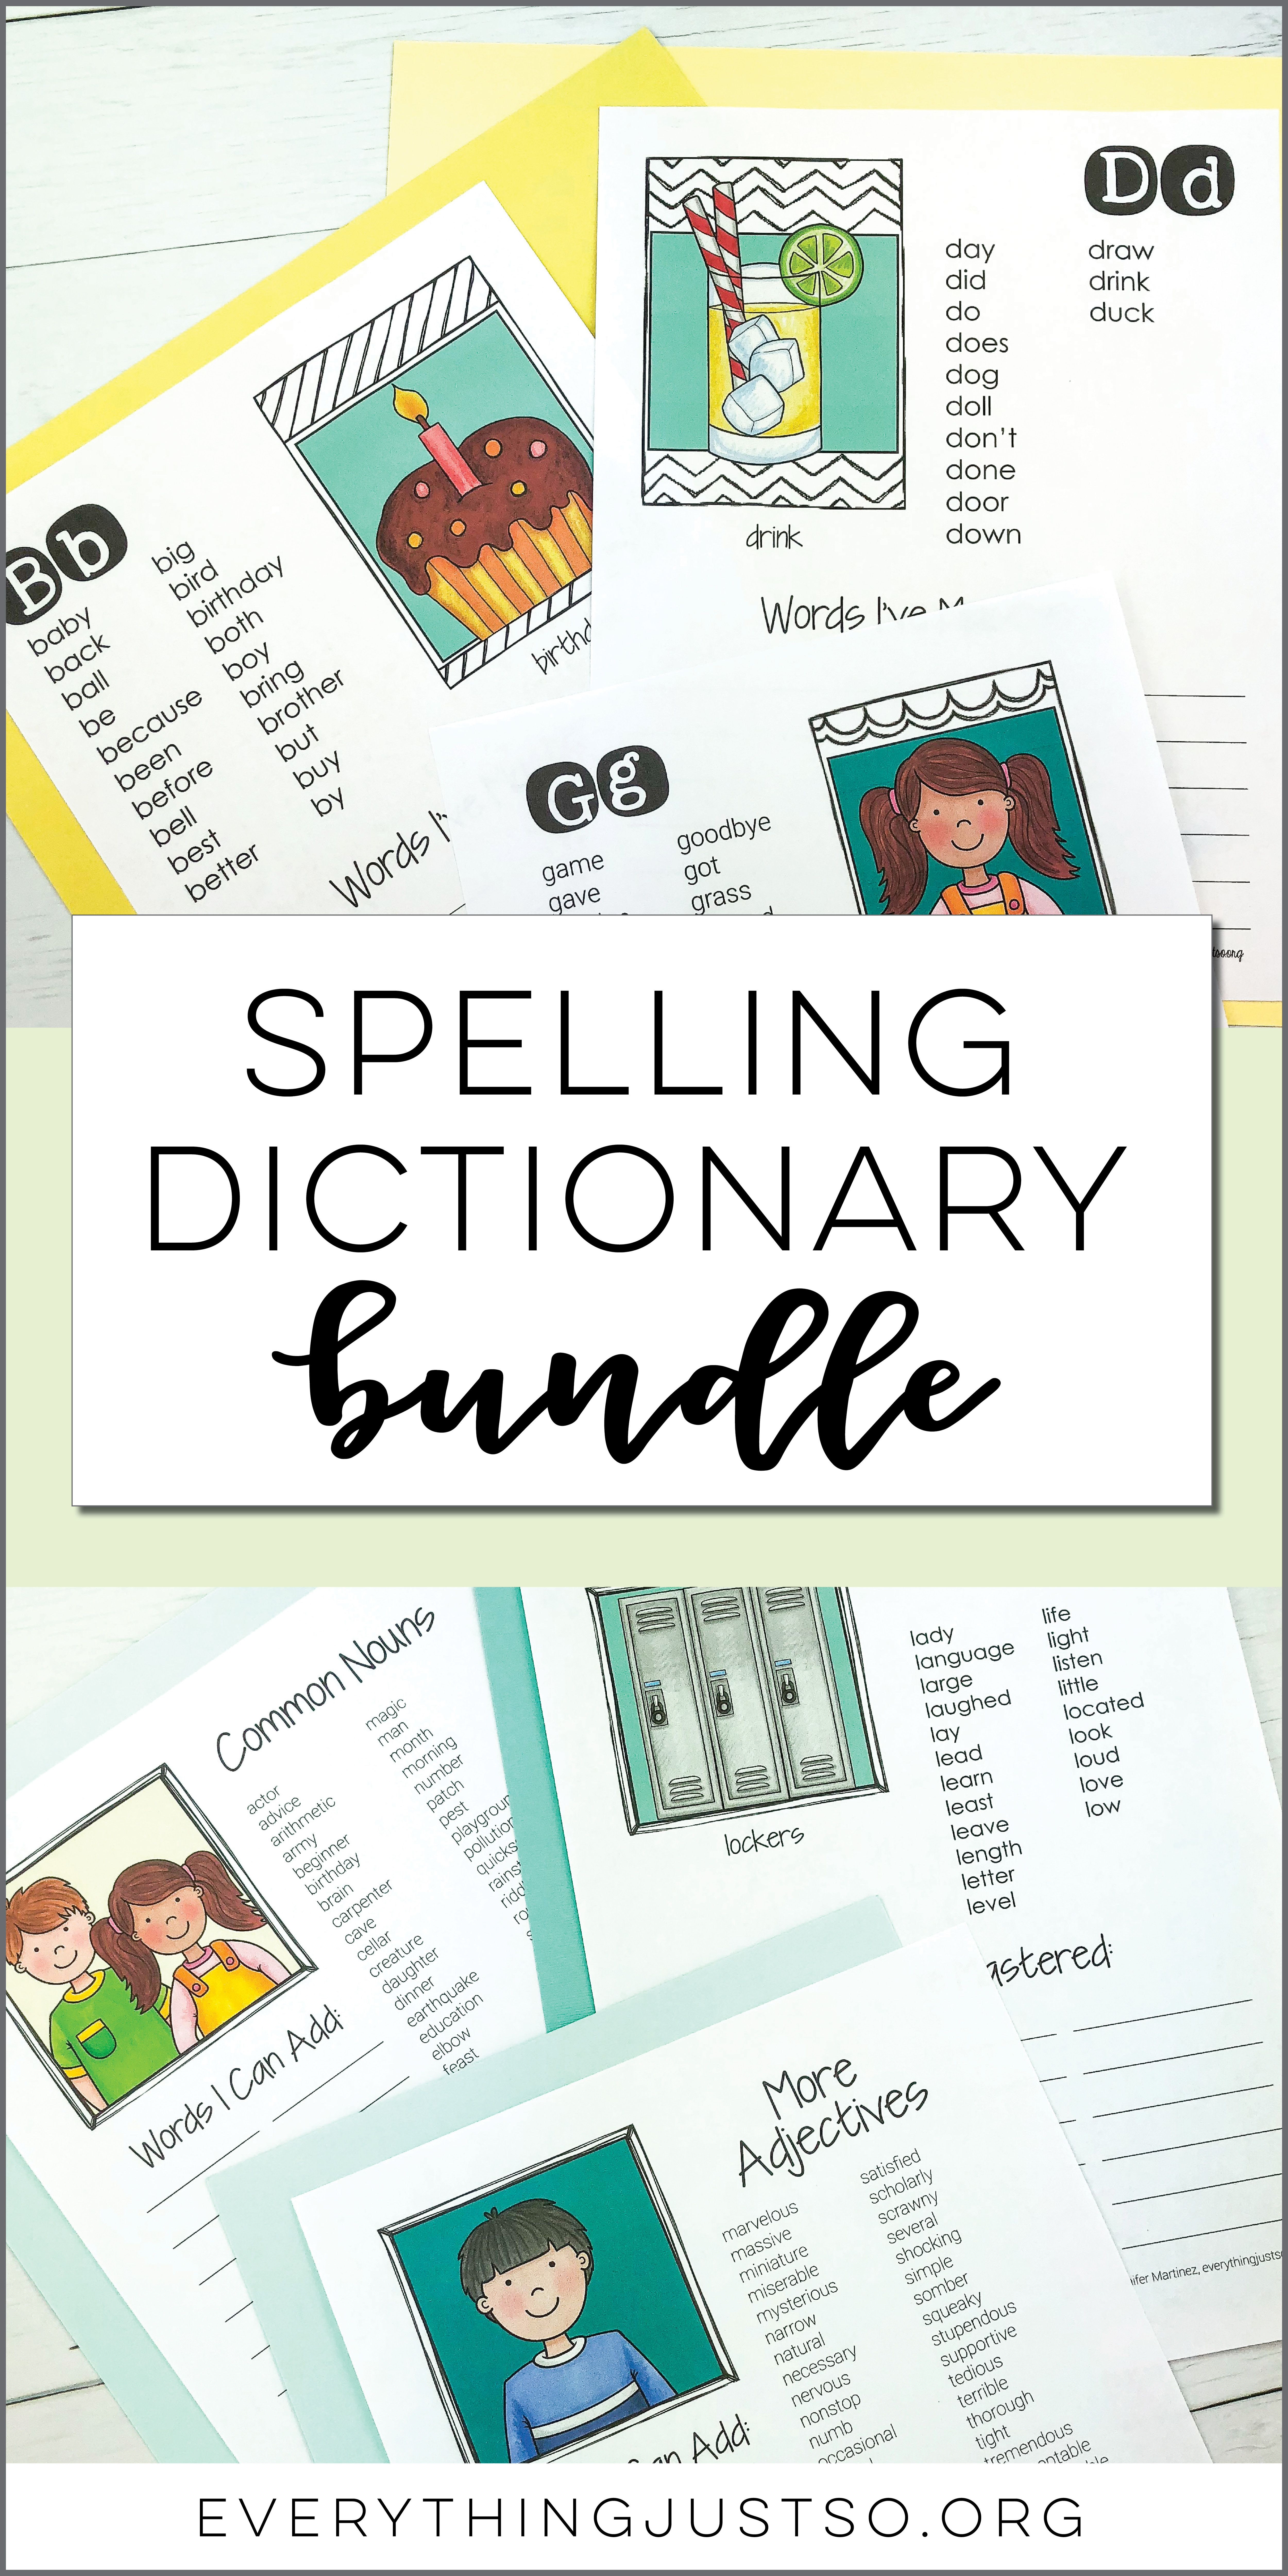 Spelling Dictionary Bundle | Spelling Dictionaries are the